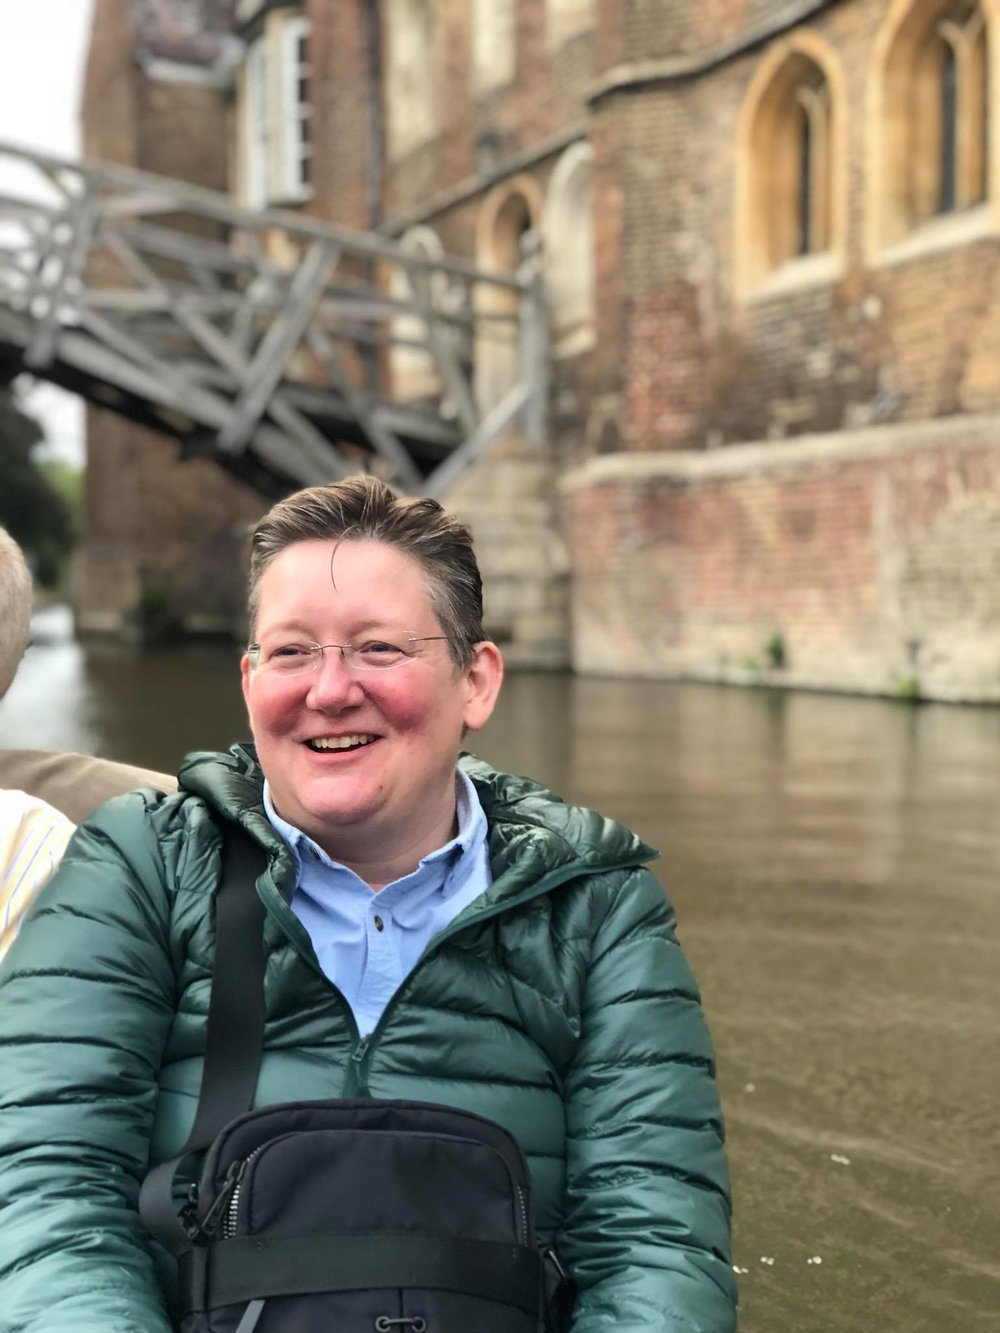 About Dr Karen Ottewell - Dr Karen Ottewell is a Fellow of Lucy Cavendish College, Cambridge and Director of Academic Development and Training for International Students in the Language Centre at the University of Cambridge.In 2016, she won the prestigious Pilkington Teaching Prize for her work at the Cambridge Language Centre. She's currently pursuing a second doctorate on ways to help students develop their academic writing skills.Her professional interests include assessment design, transferable skills training, contrastive rhetoric and defining the 'cultural' influence on writing, the international student experience, and transition to UK HE.Language Centre, University of CambridgeKaren's LinkedIn profile